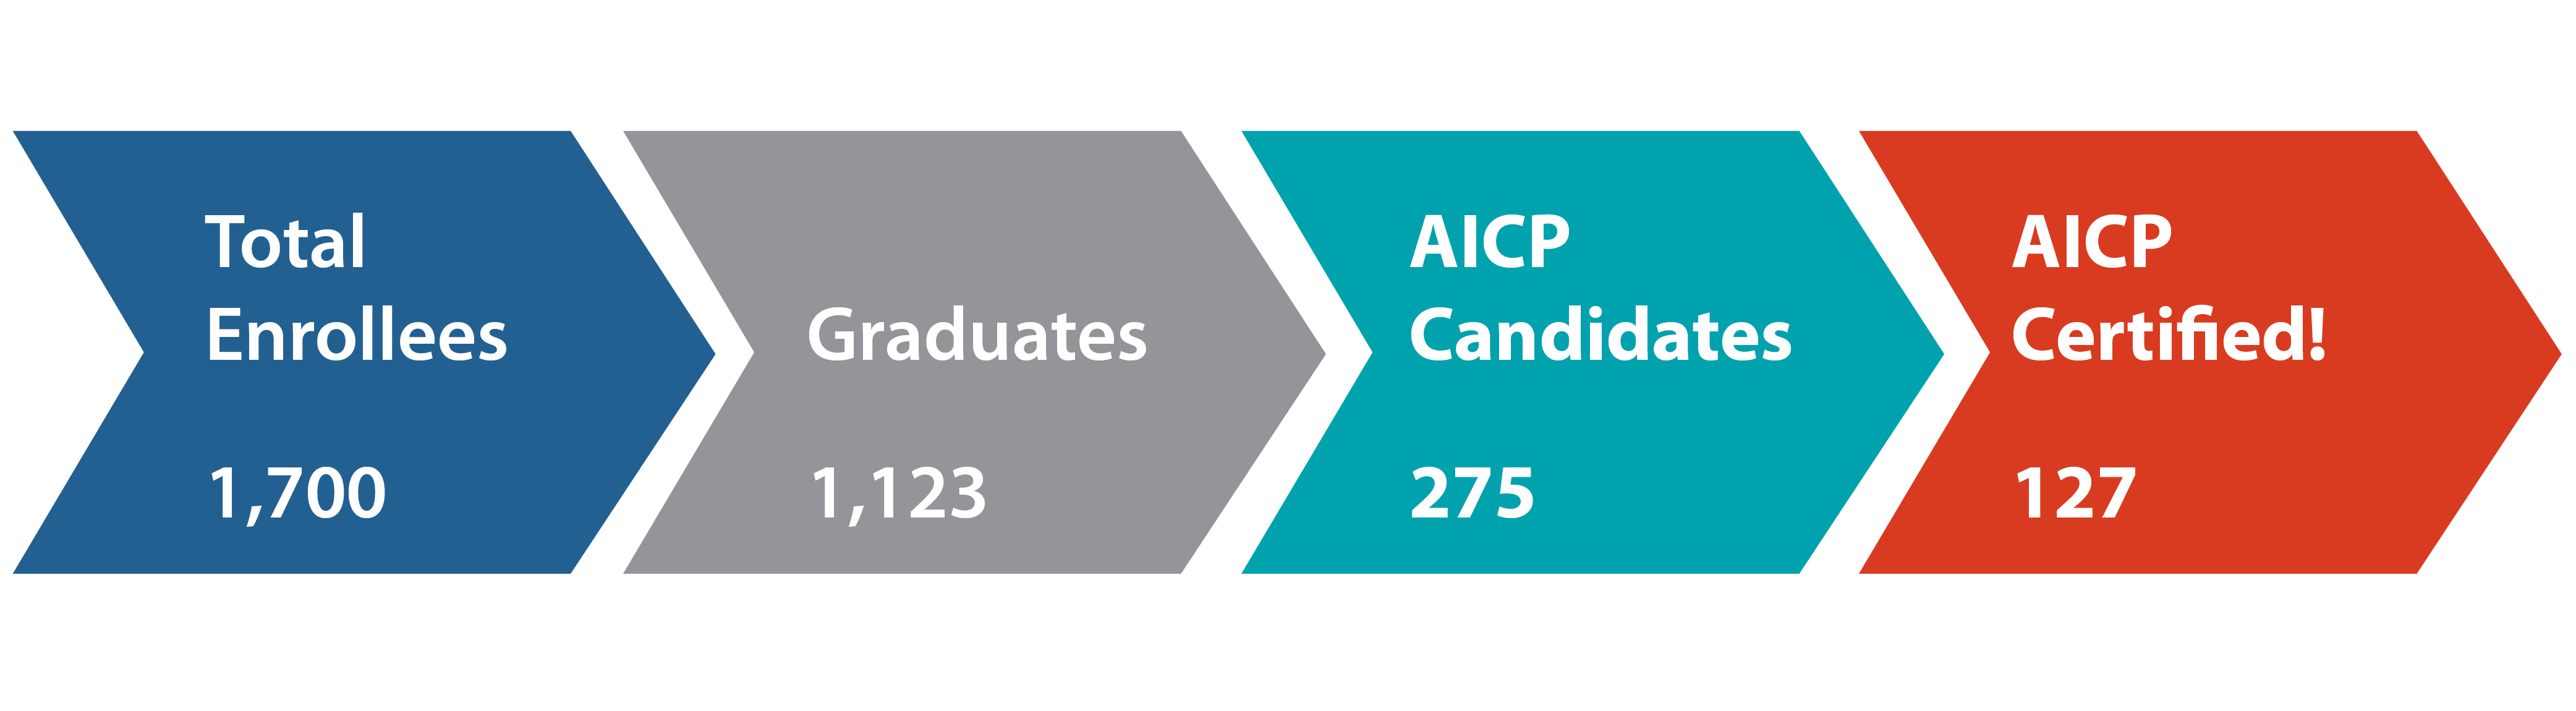 aicp candidate pilot program numbers questions